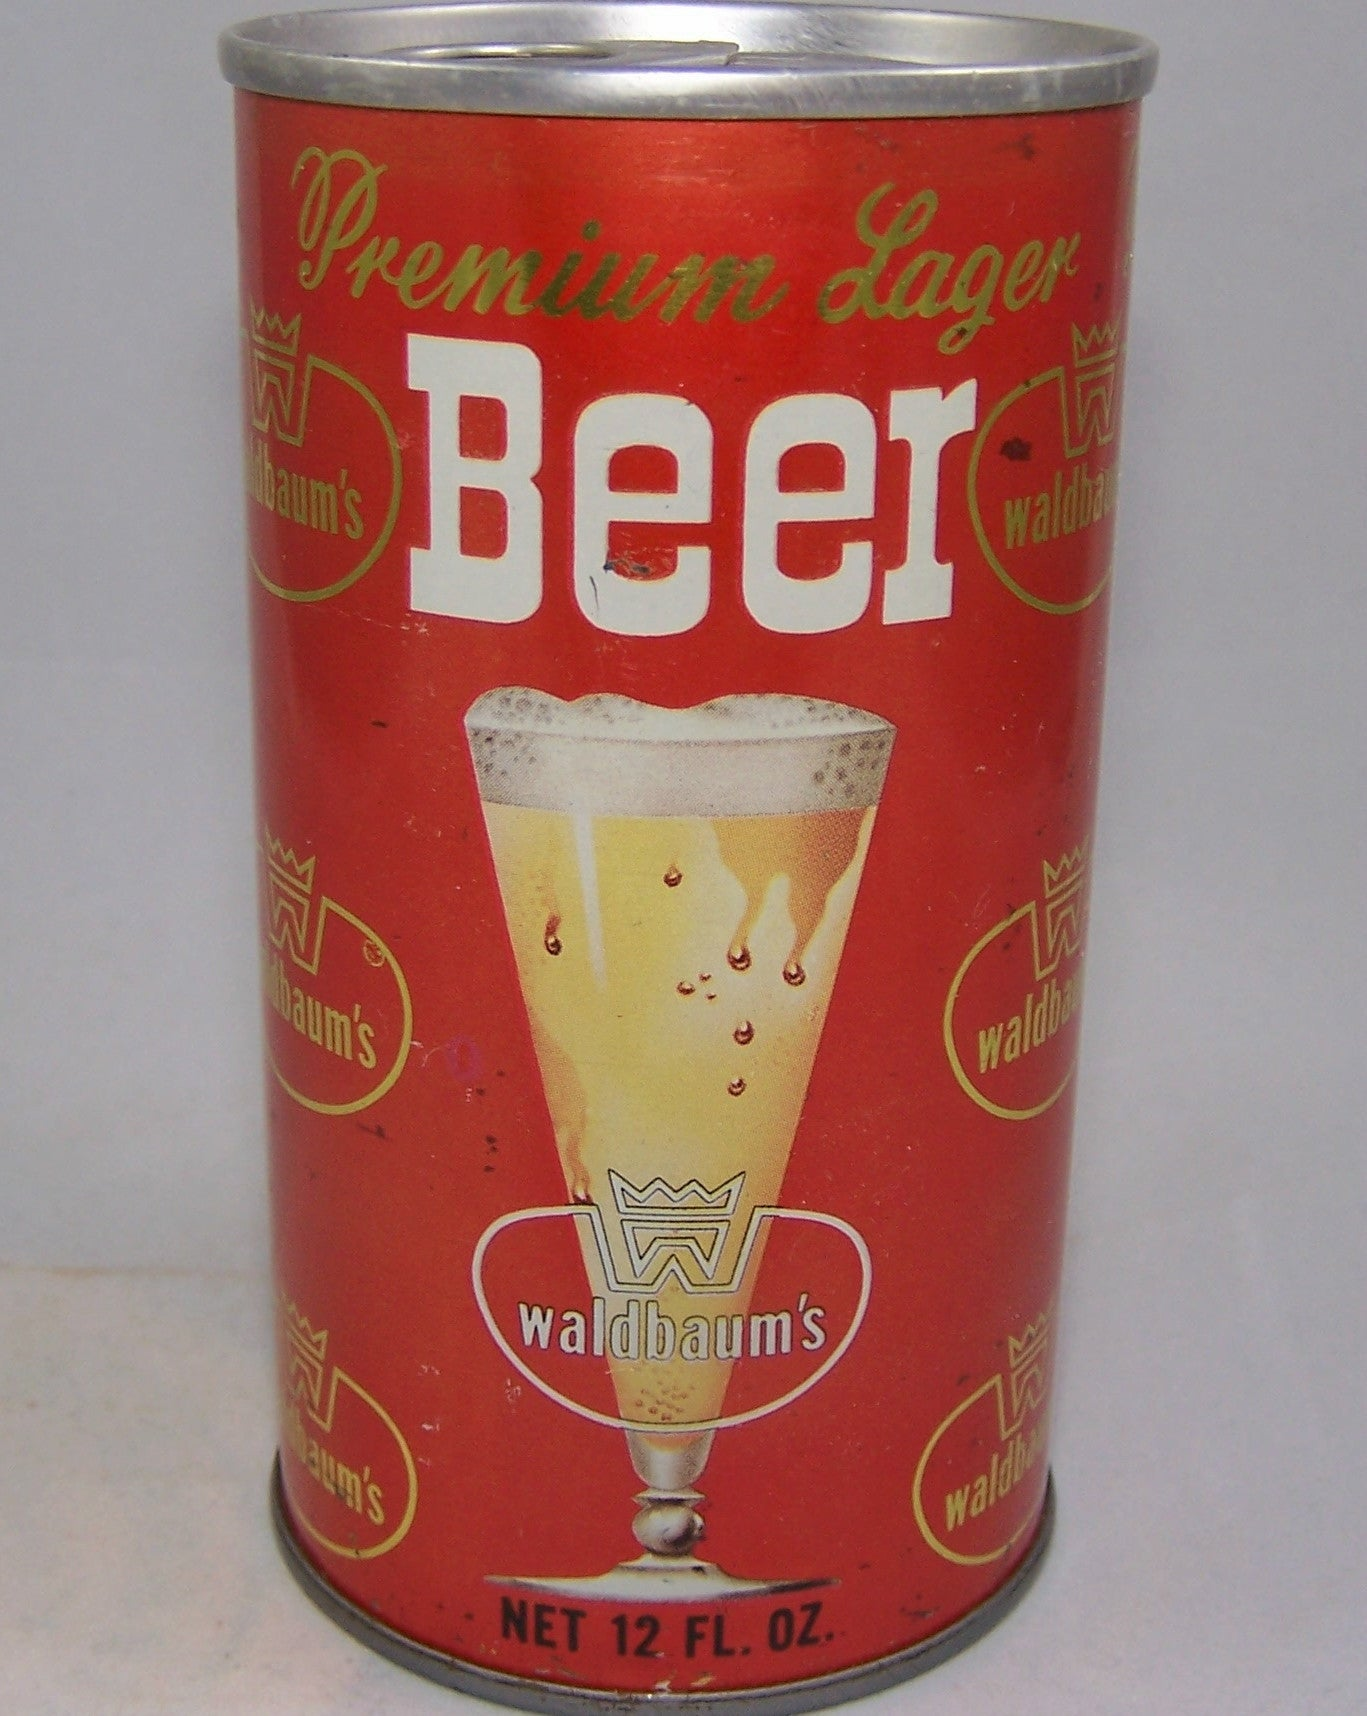 Waldbaum's Premium Lager Beer, USBC II 133-23, Grade 1/1- Sold on 09/09/16